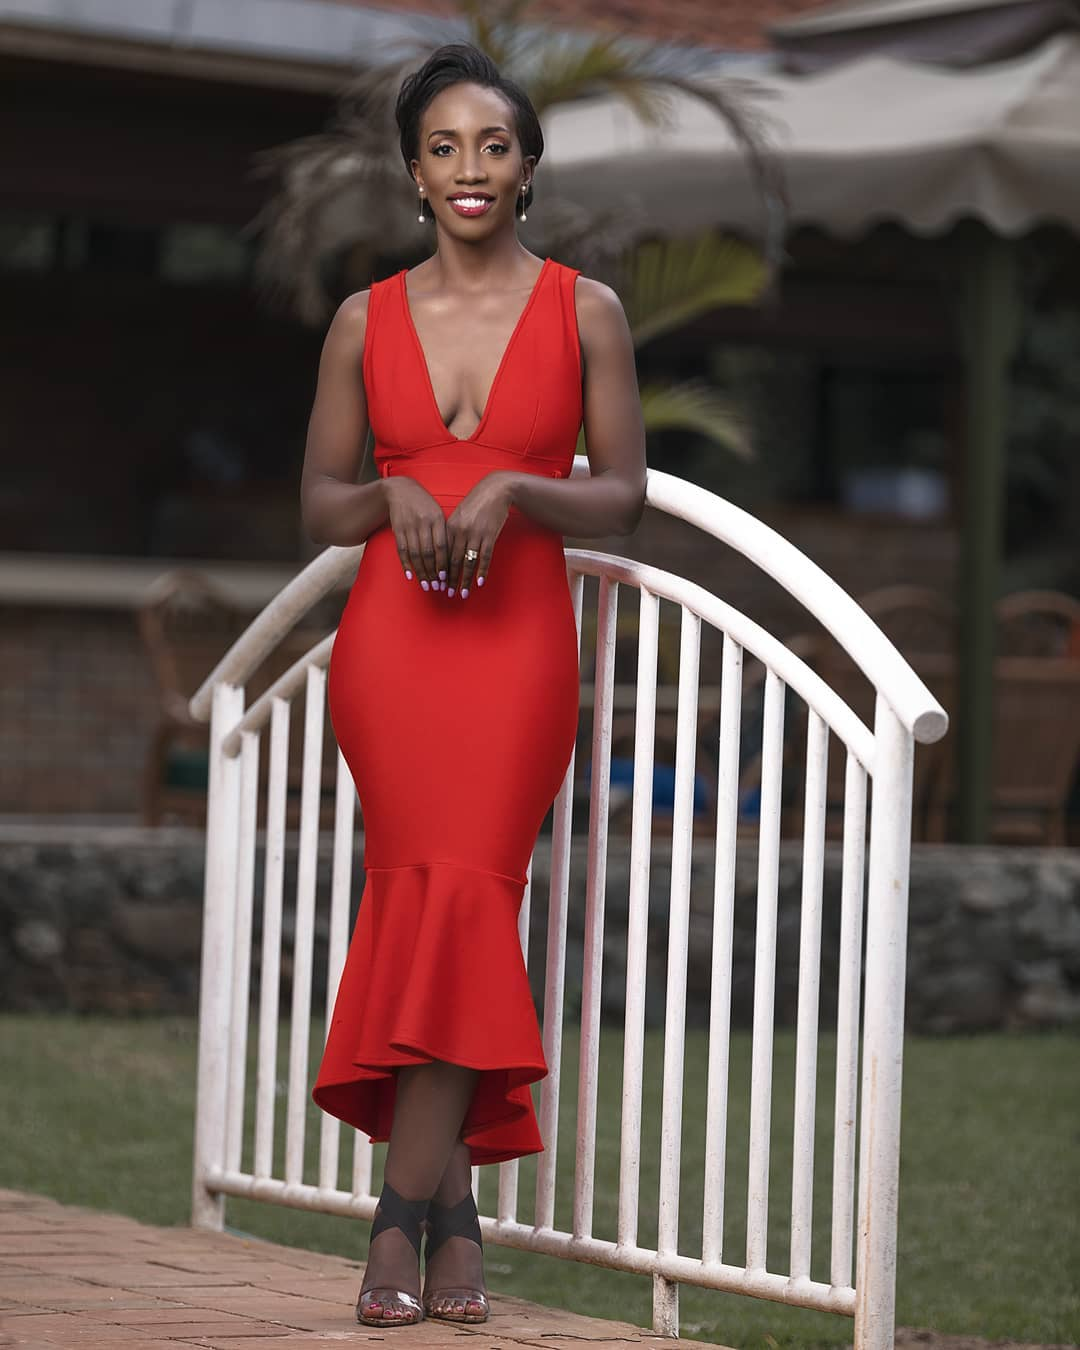 53563179 126512105082224 6749334828486990003 n - Stunning Mama: Check out how Yvonne Okwara looks at 36